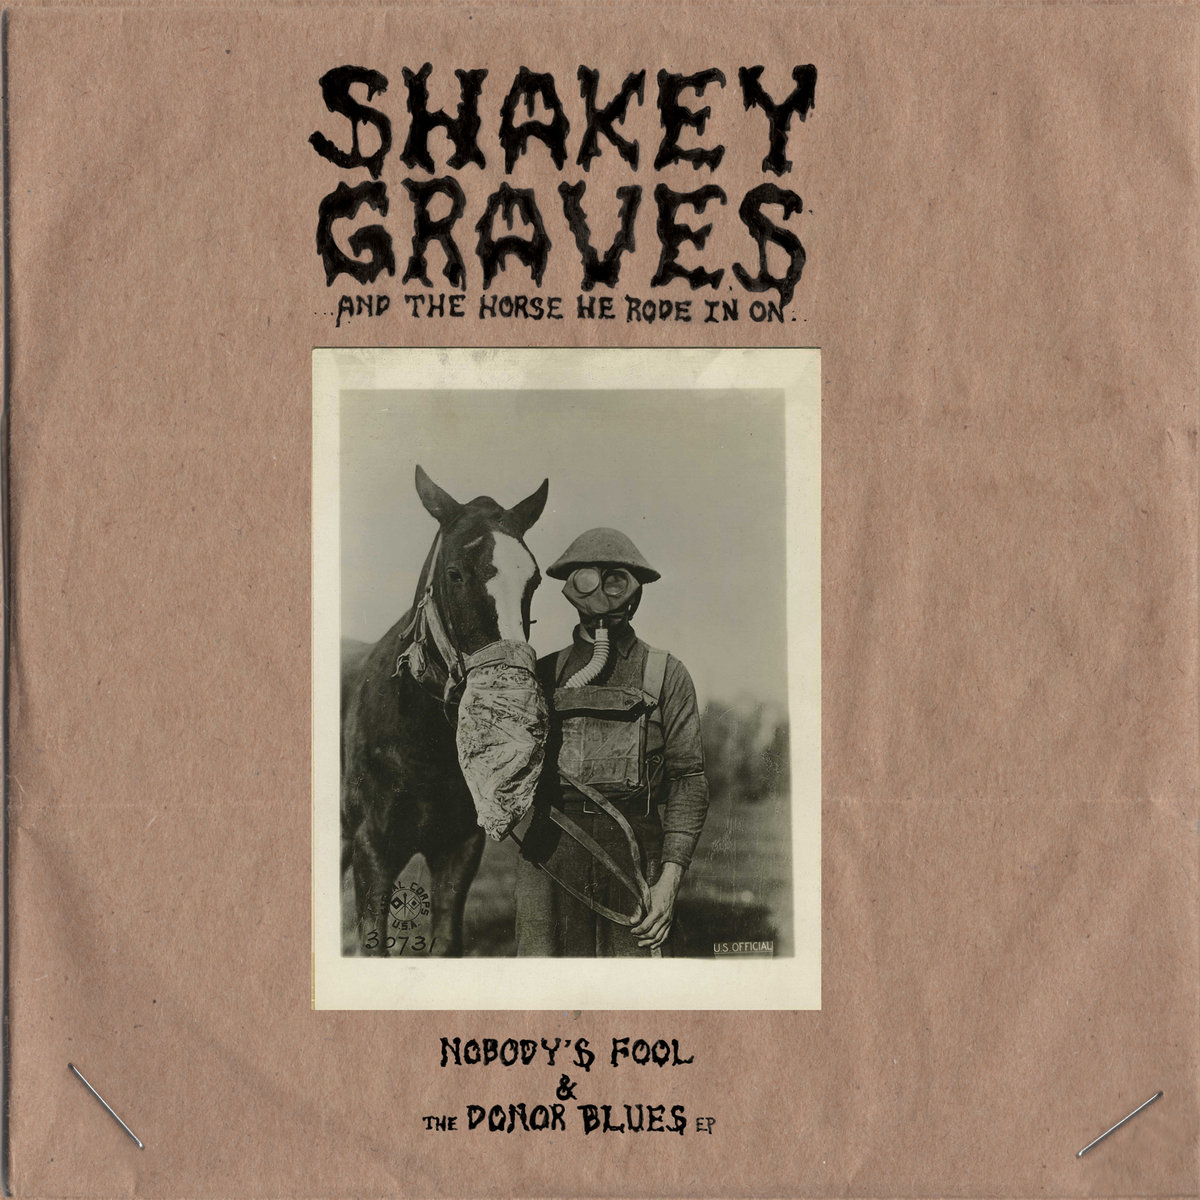 Shakey Graves And The Horse He Rode In On